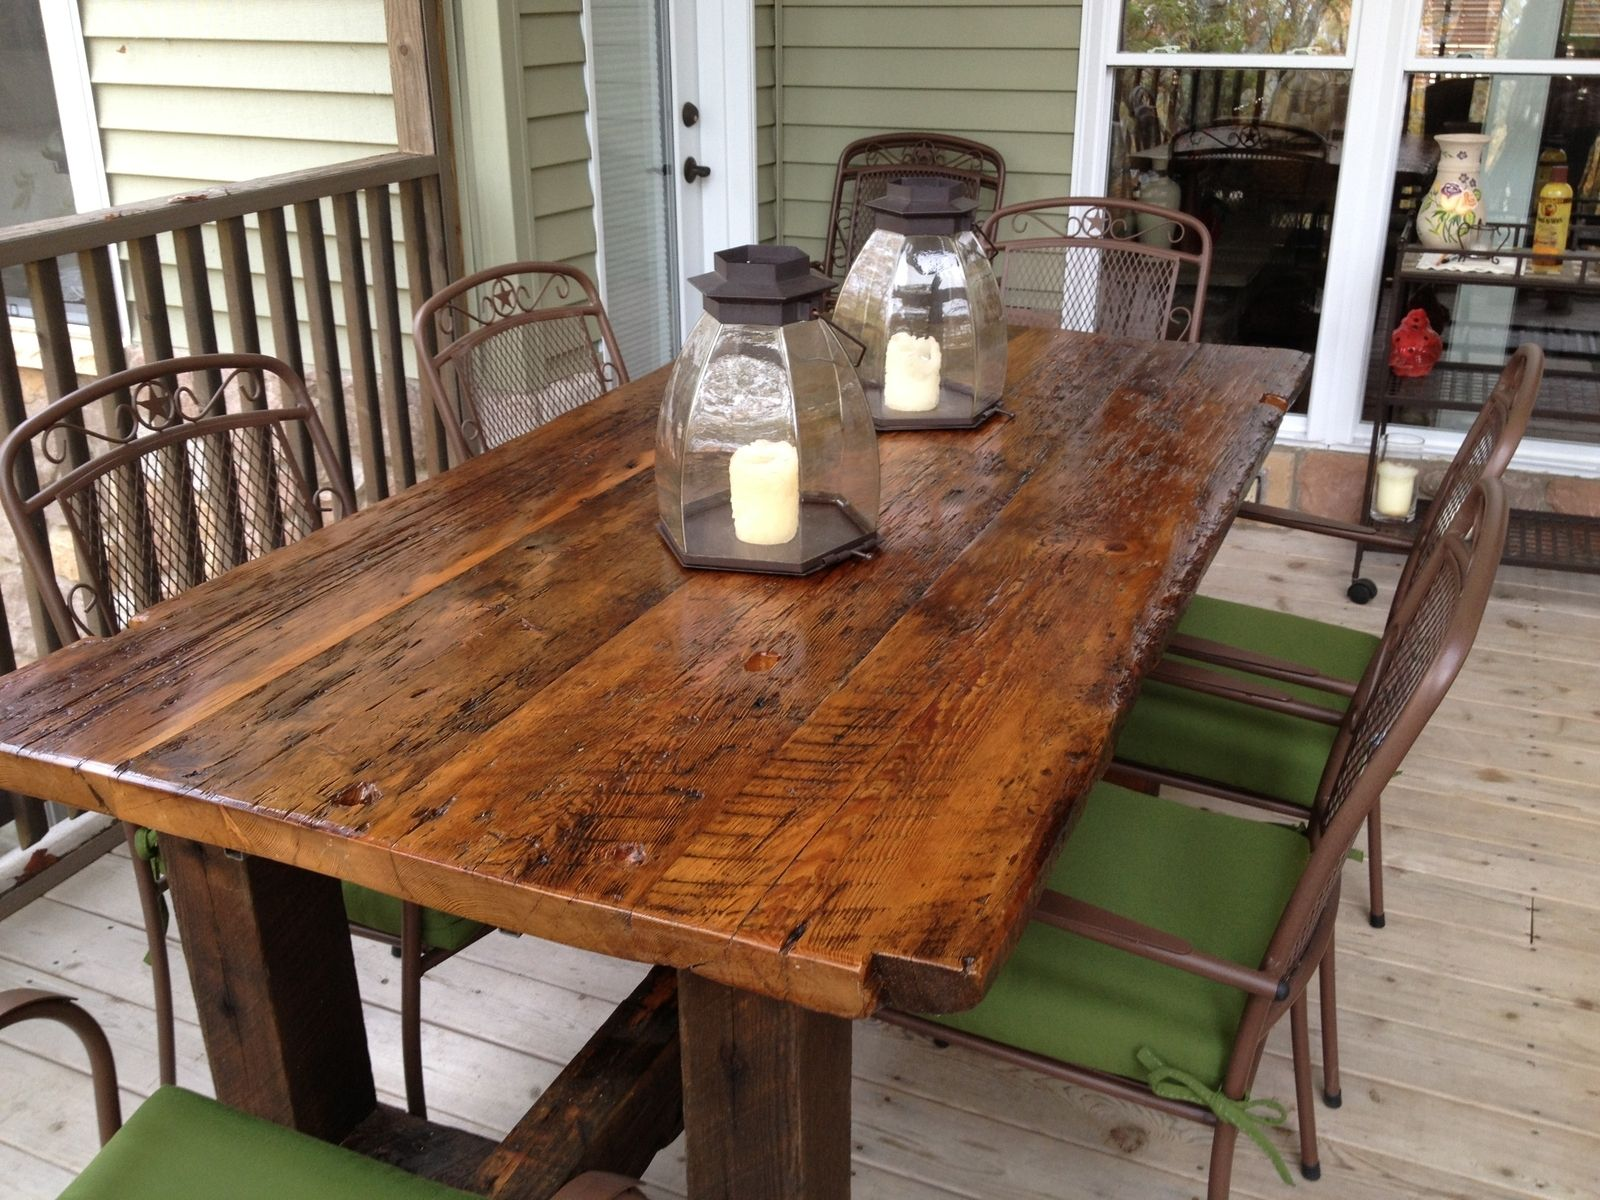 Reclaimed Trestle Table by Matthew Elias. Reclaimed Wood Furniture and Barnwood Furniture   CustomMade com